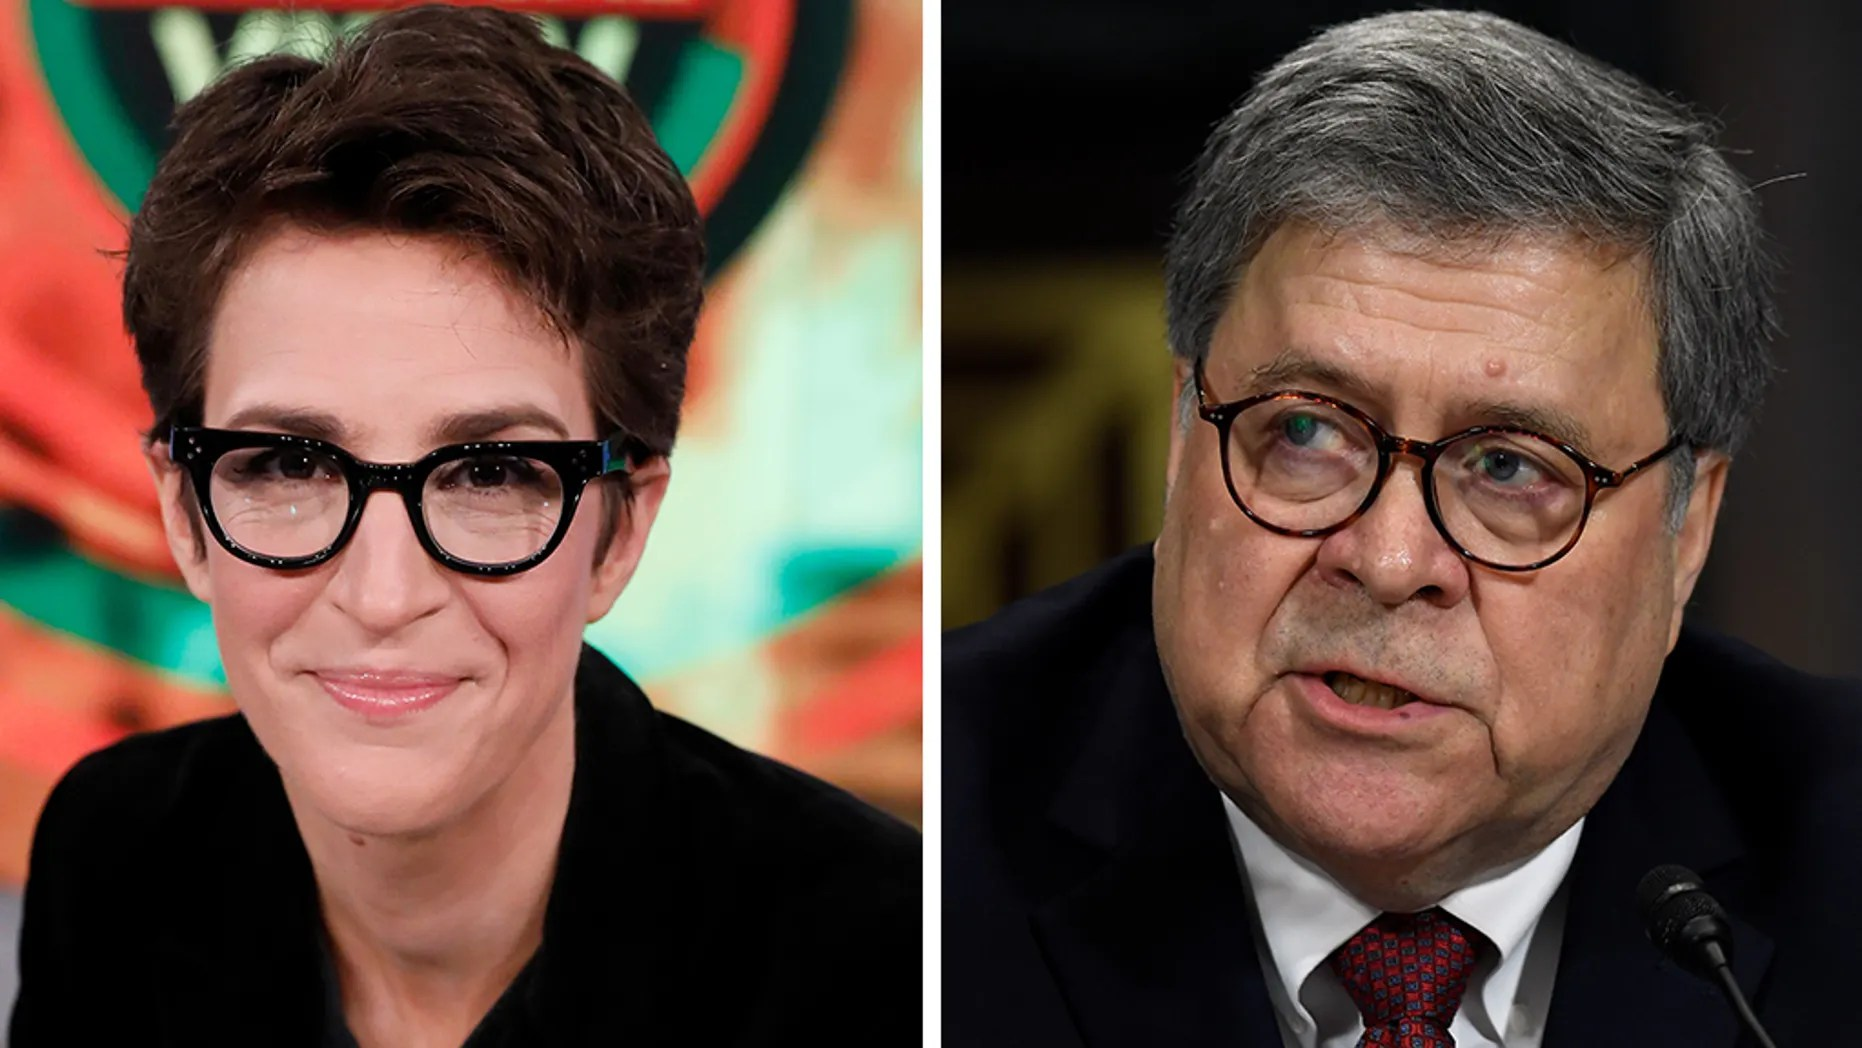 Rachel Maddow Democrats Used Misleading Barr Video To